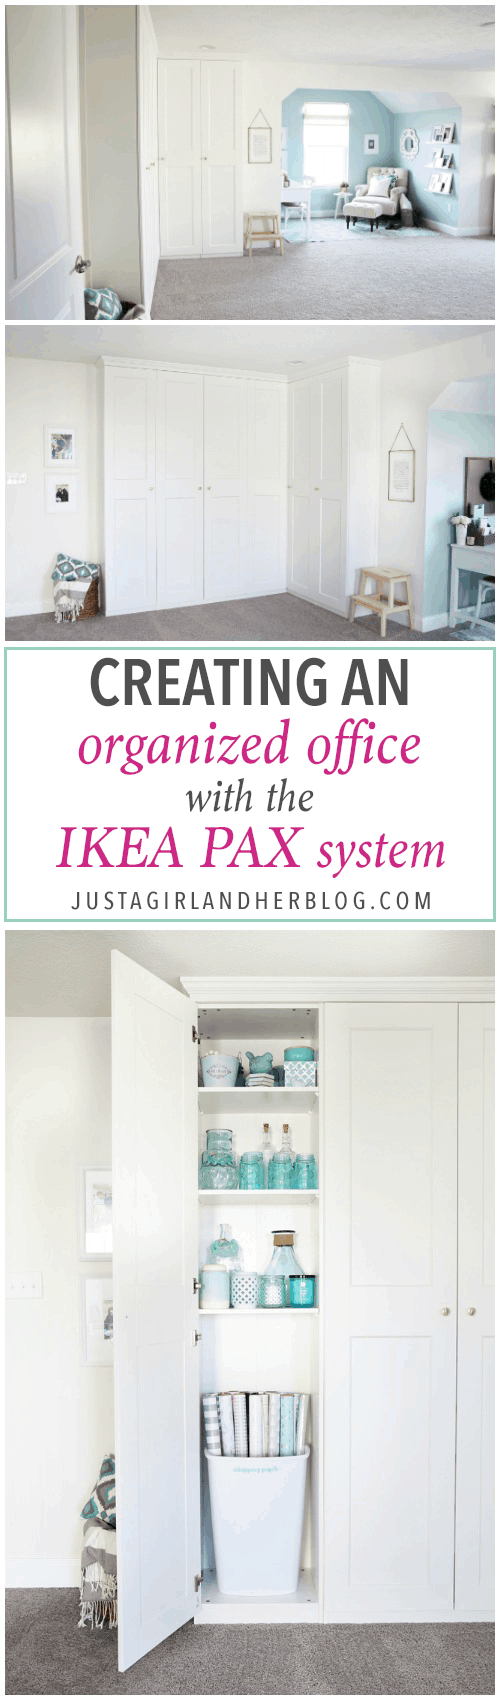 Creating an Organized Office with the IKEA PAX System - Just a Girl ...